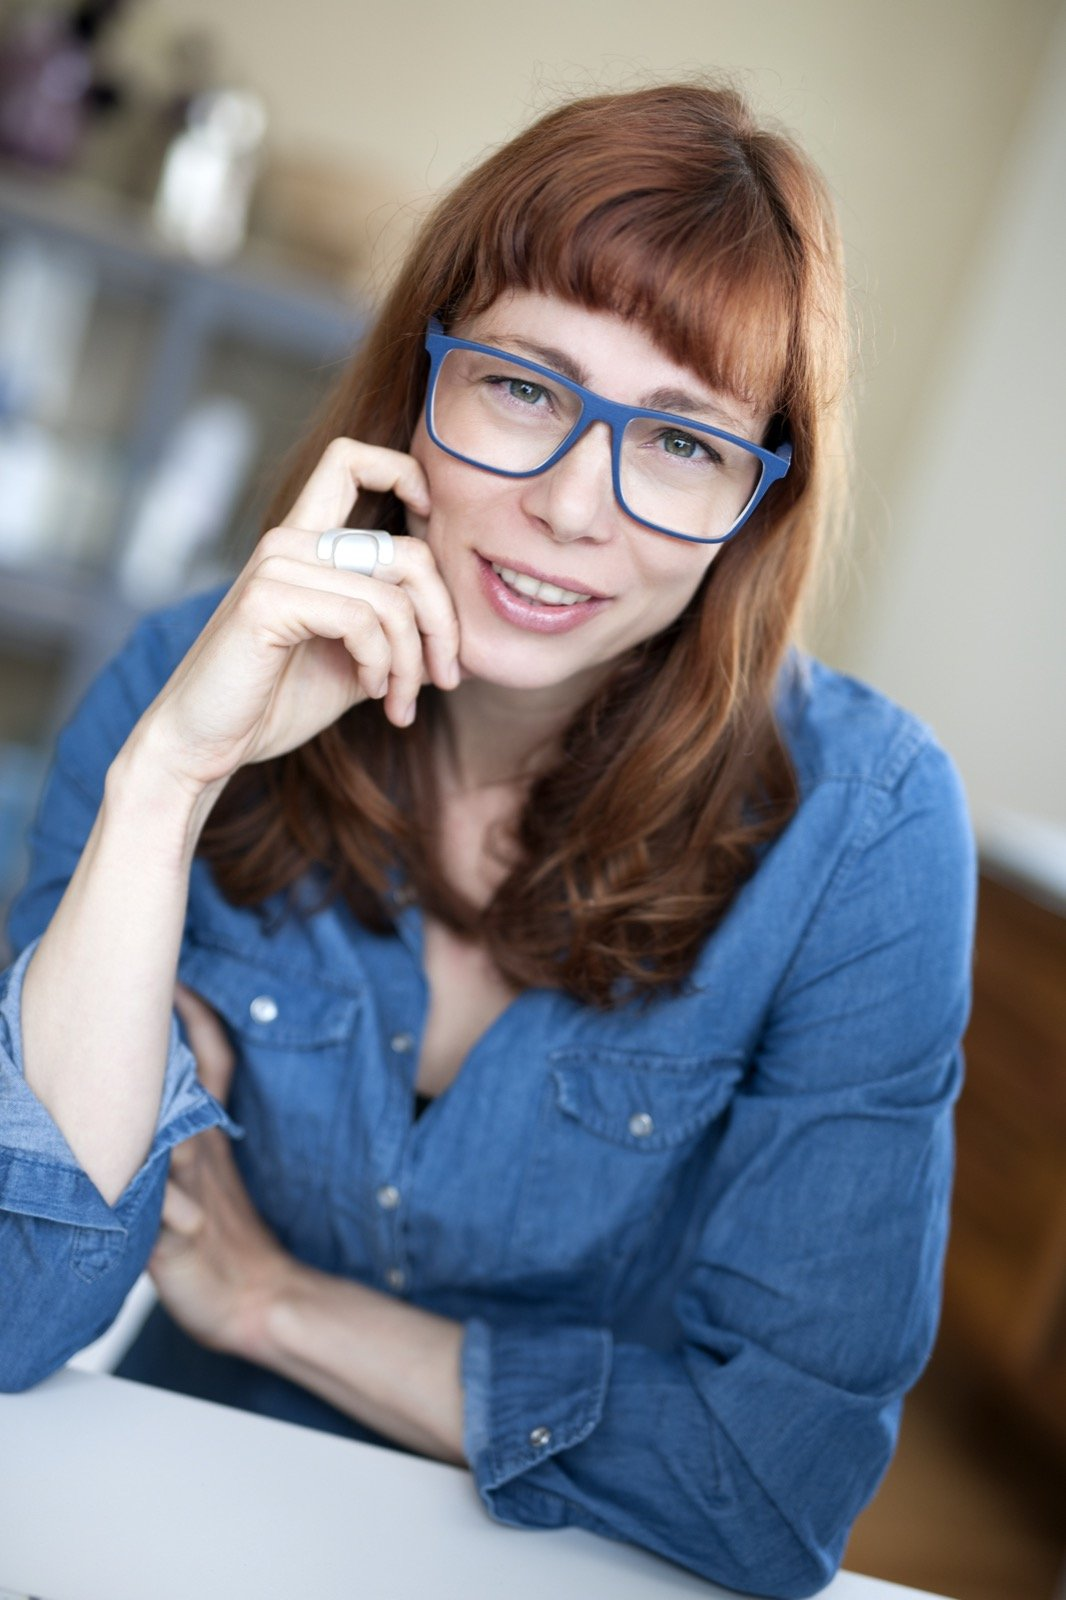 Woman with red hair and blue glasses